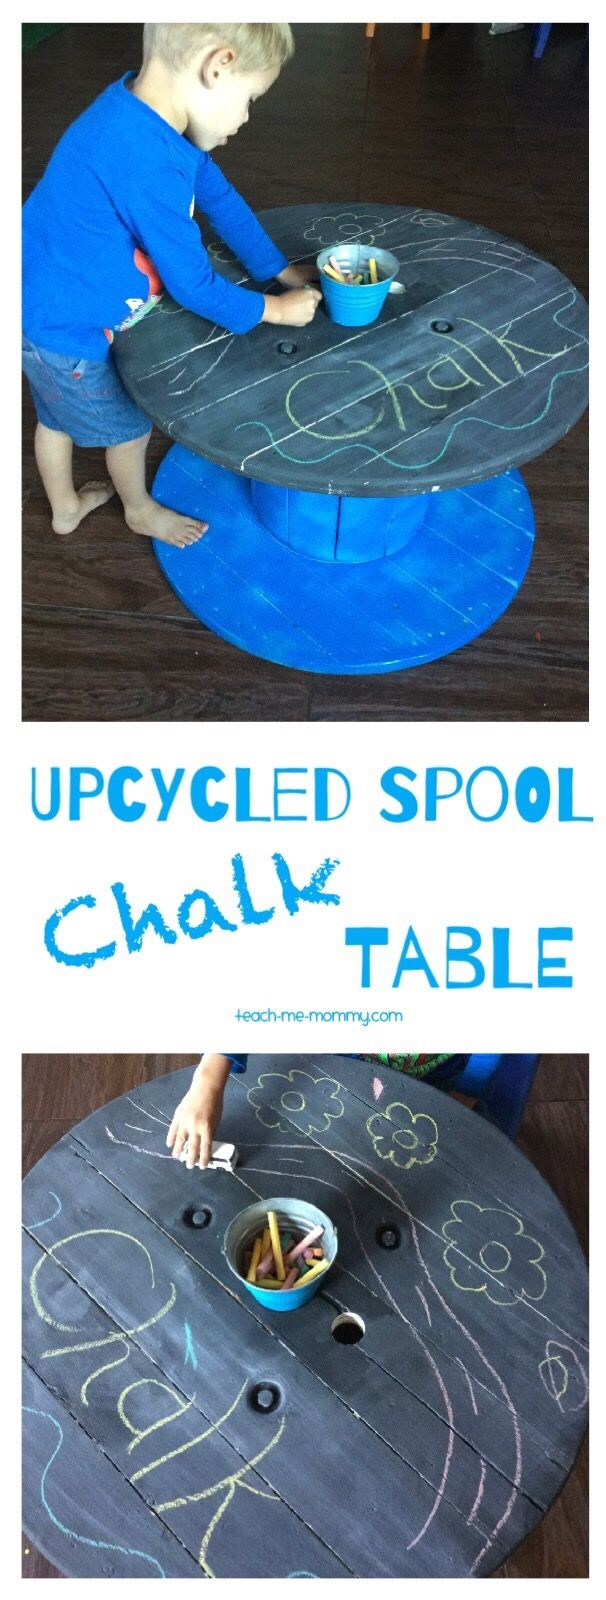 Upcycled Spool Chalk Table Amazing Creations For Kids